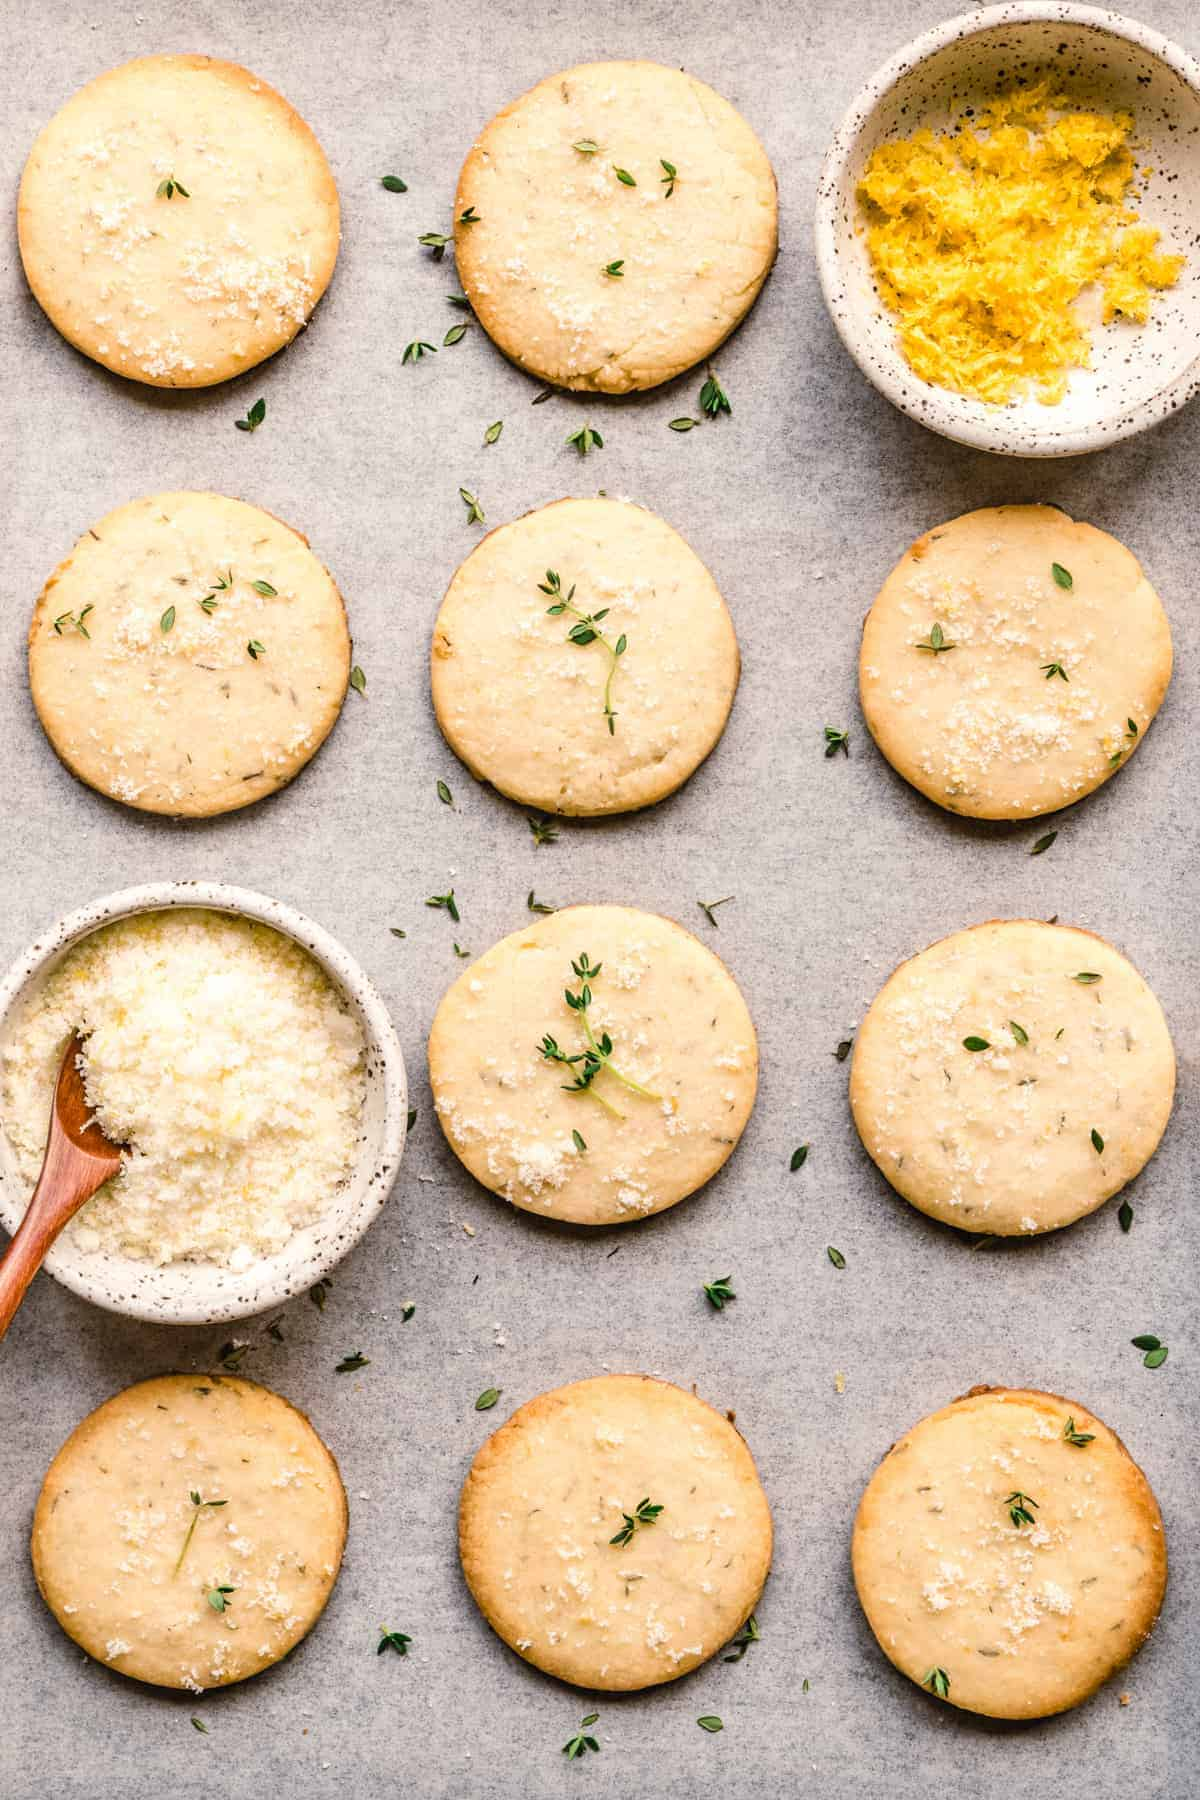 Enjoy these golden brown lemon thyme shortbread cookies any time you need a sweet treat.